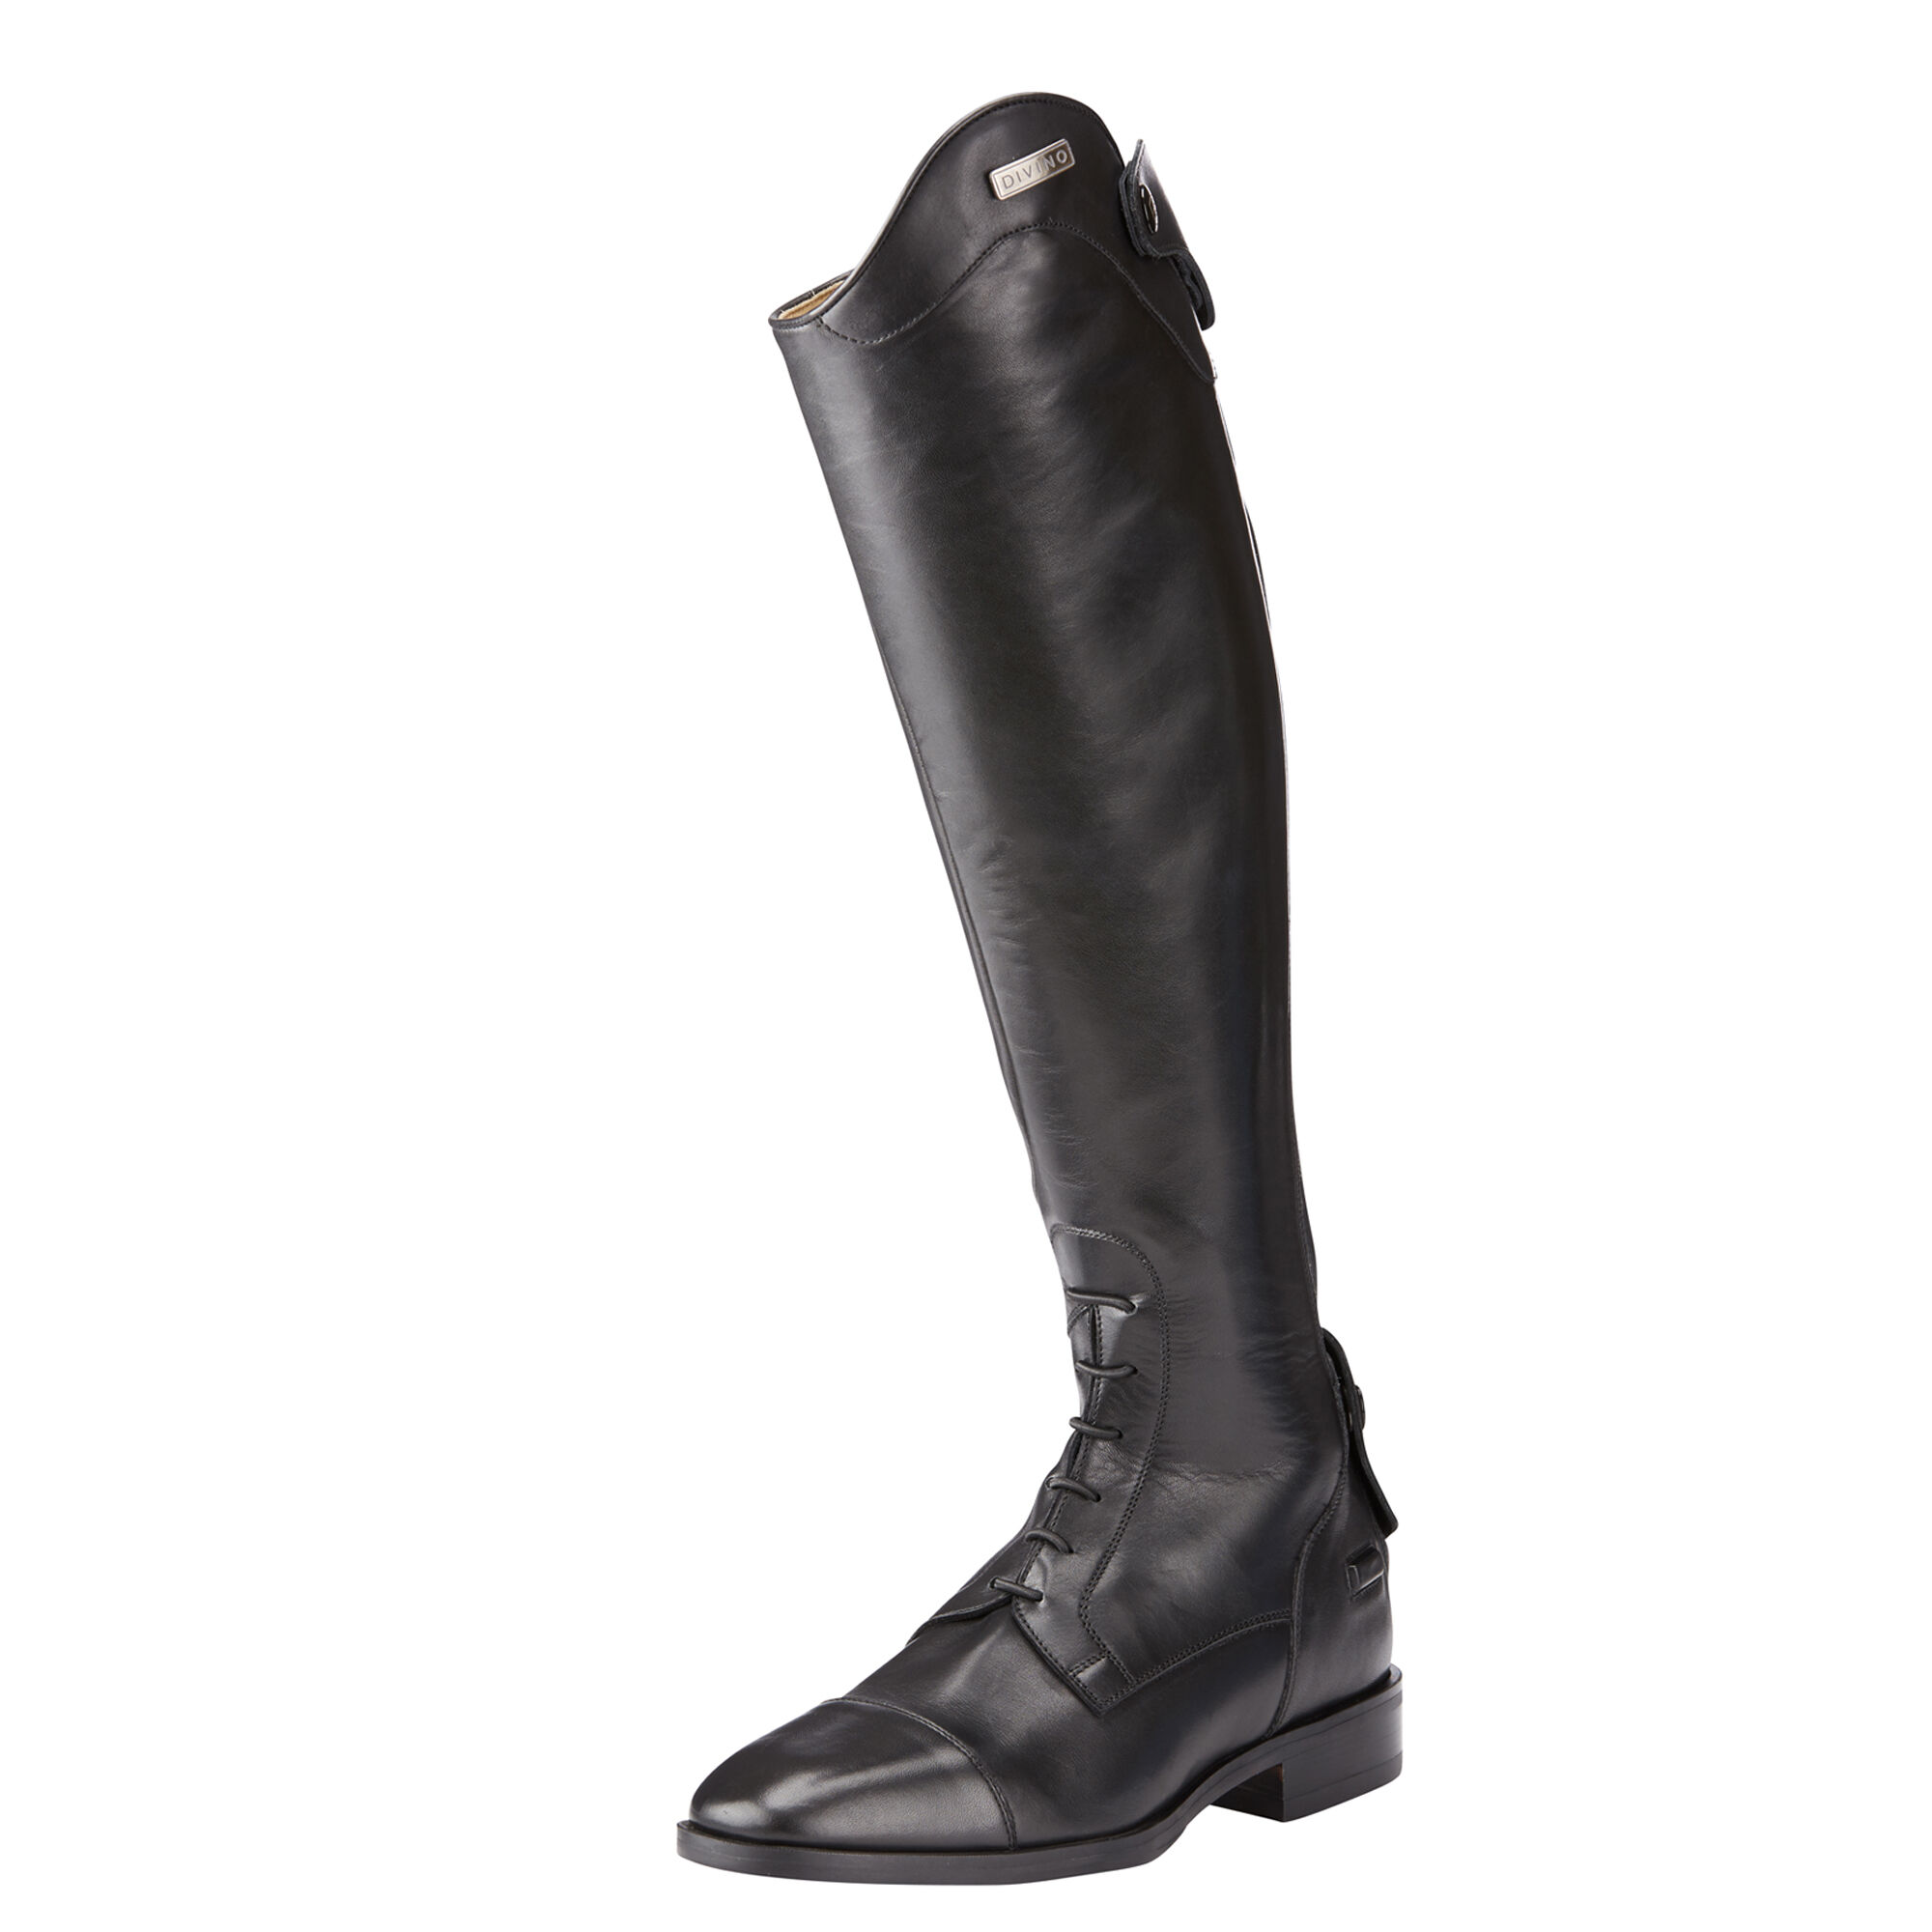 Divino Divino Tall Riding Tall Riding Boot Divino Divino Boot Riding Tall Boot 4AqRj53L